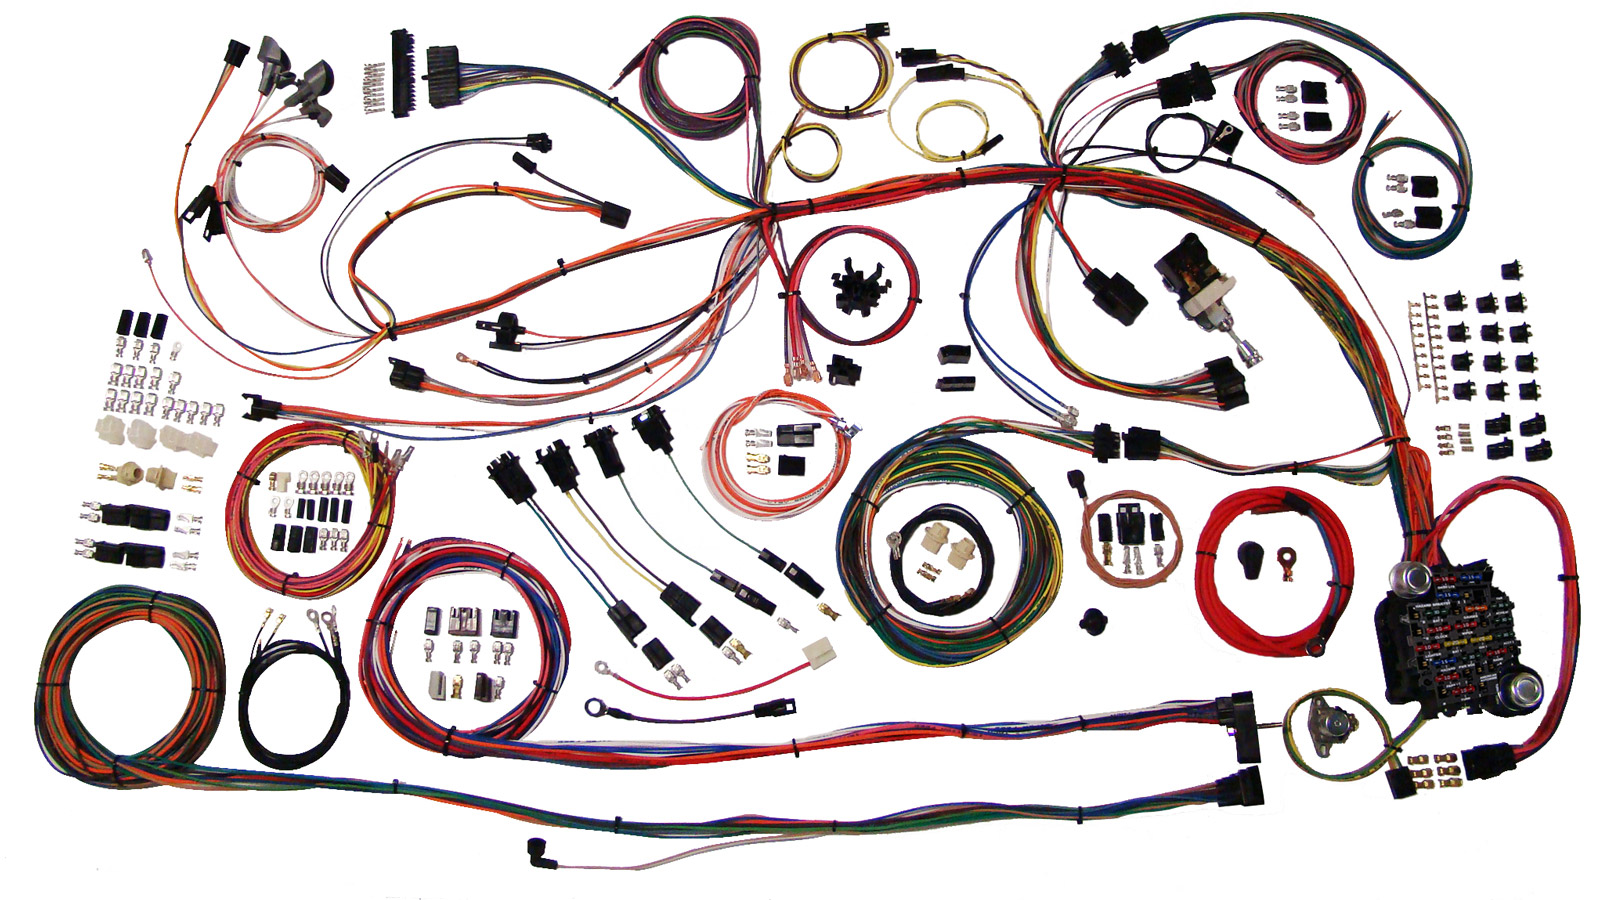 l_510158 68 69 chevelle classic update wiring harness 510158 aaw wiring harness at aneh.co